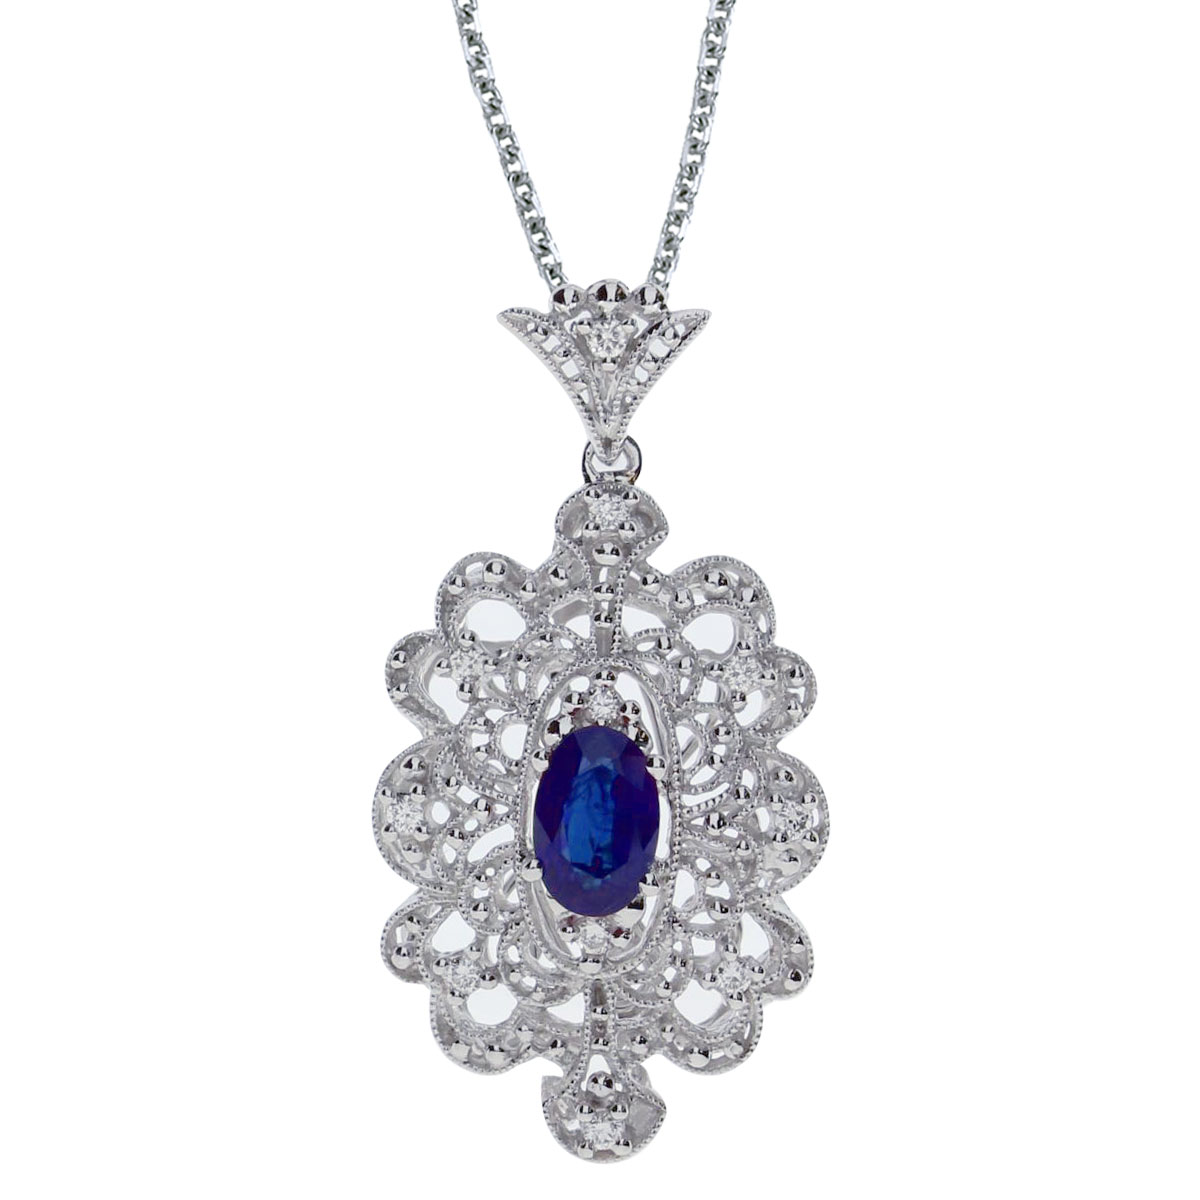 This beautiful 14k white gold pendant features a bright 6x4 mm oval sapphire and .10 carats of shimmering diamonds.